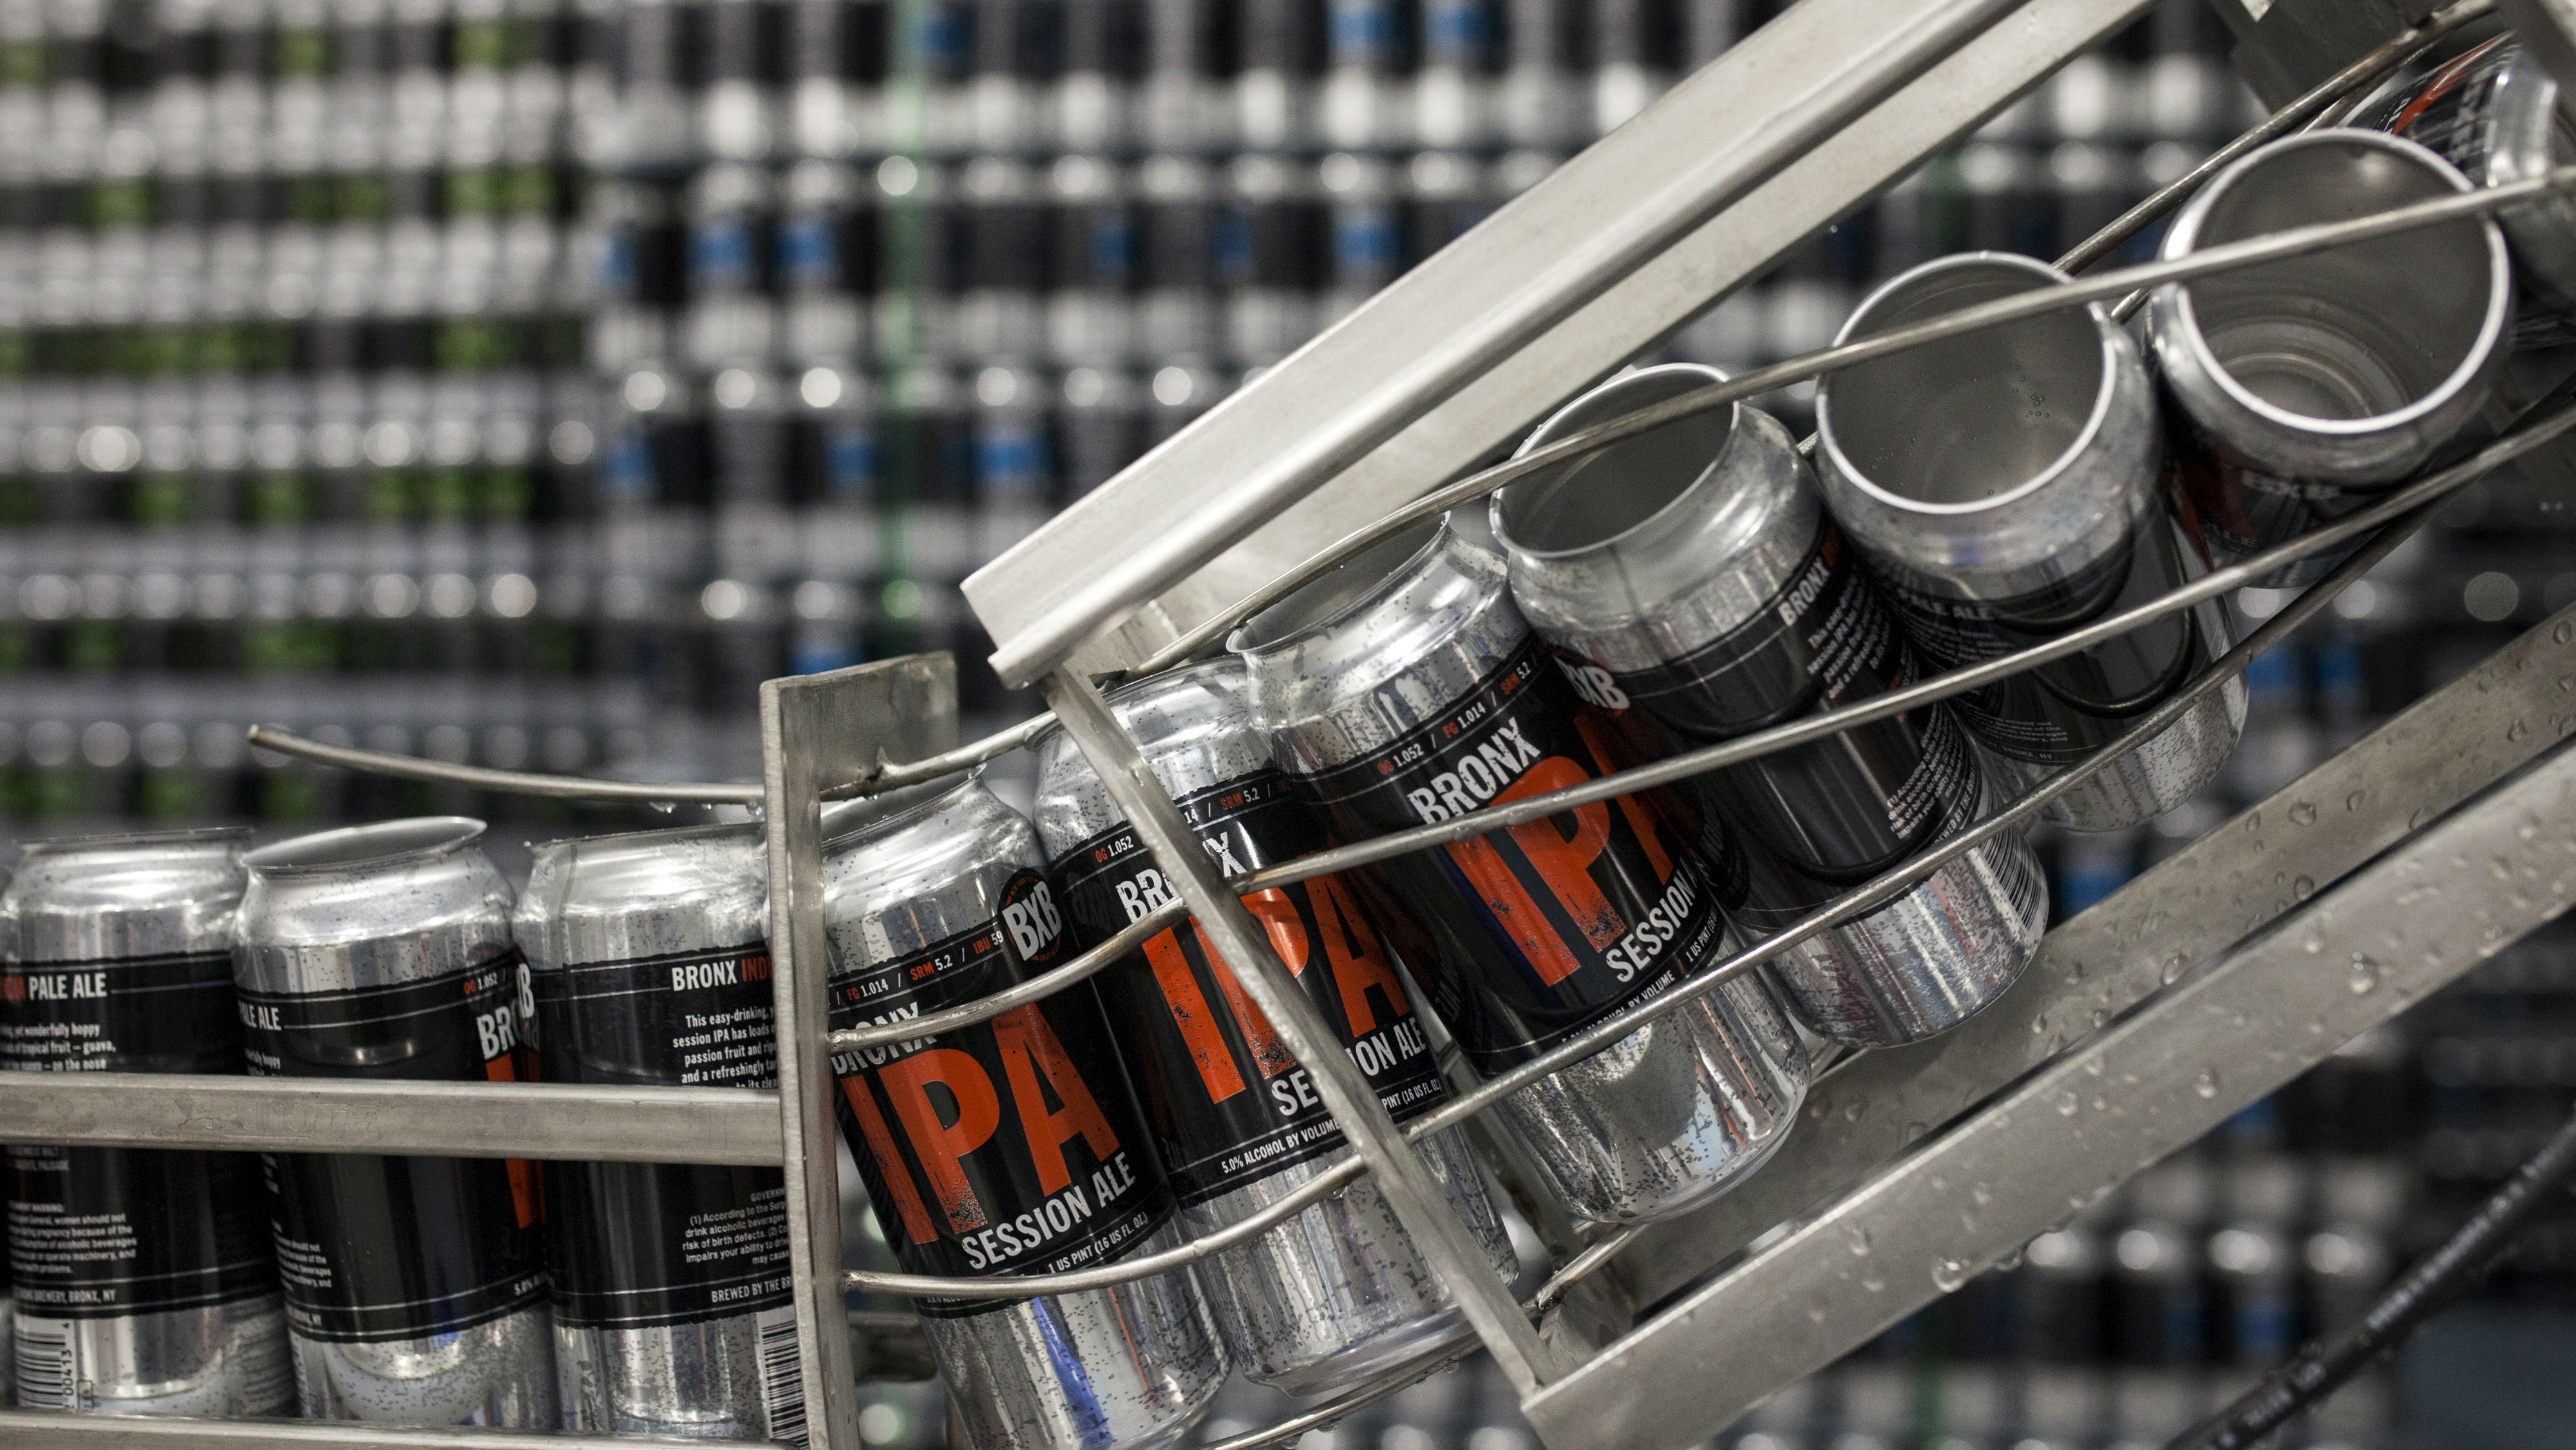 Empty cans wait to be filled with Bronx IPA Session Ale beer at the Bronx Brewery in the Bronx borough of New York, United States, March 5, 2015. The popularity of craft beers has grown rapidly in recent years in the United States as drinkers seek new tastes, with sales estimated to have climbed more than a fifth in 2014. U.S. sales of craft beer in 2014 were worth nearly $20 billion, according to U.S. industry body the Brewers Association, up more than 22 percent from the previous year and accounting for nearly a fifth of all beer sold in the country. Picture taken March 5, 2015.